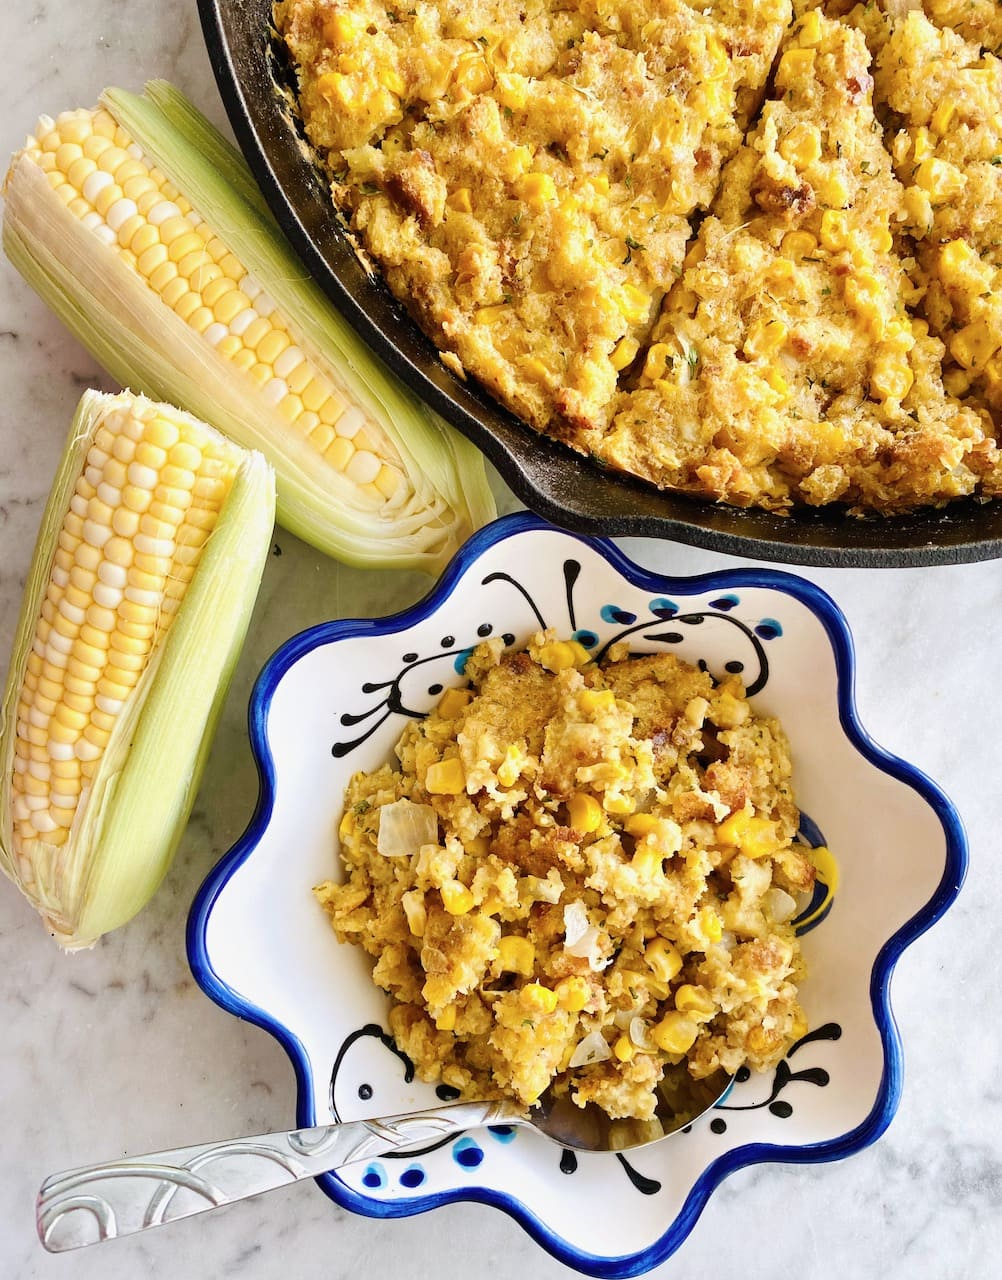 skillet of sweet corn casserole beside two ears of corn and a bowl full of casserole.